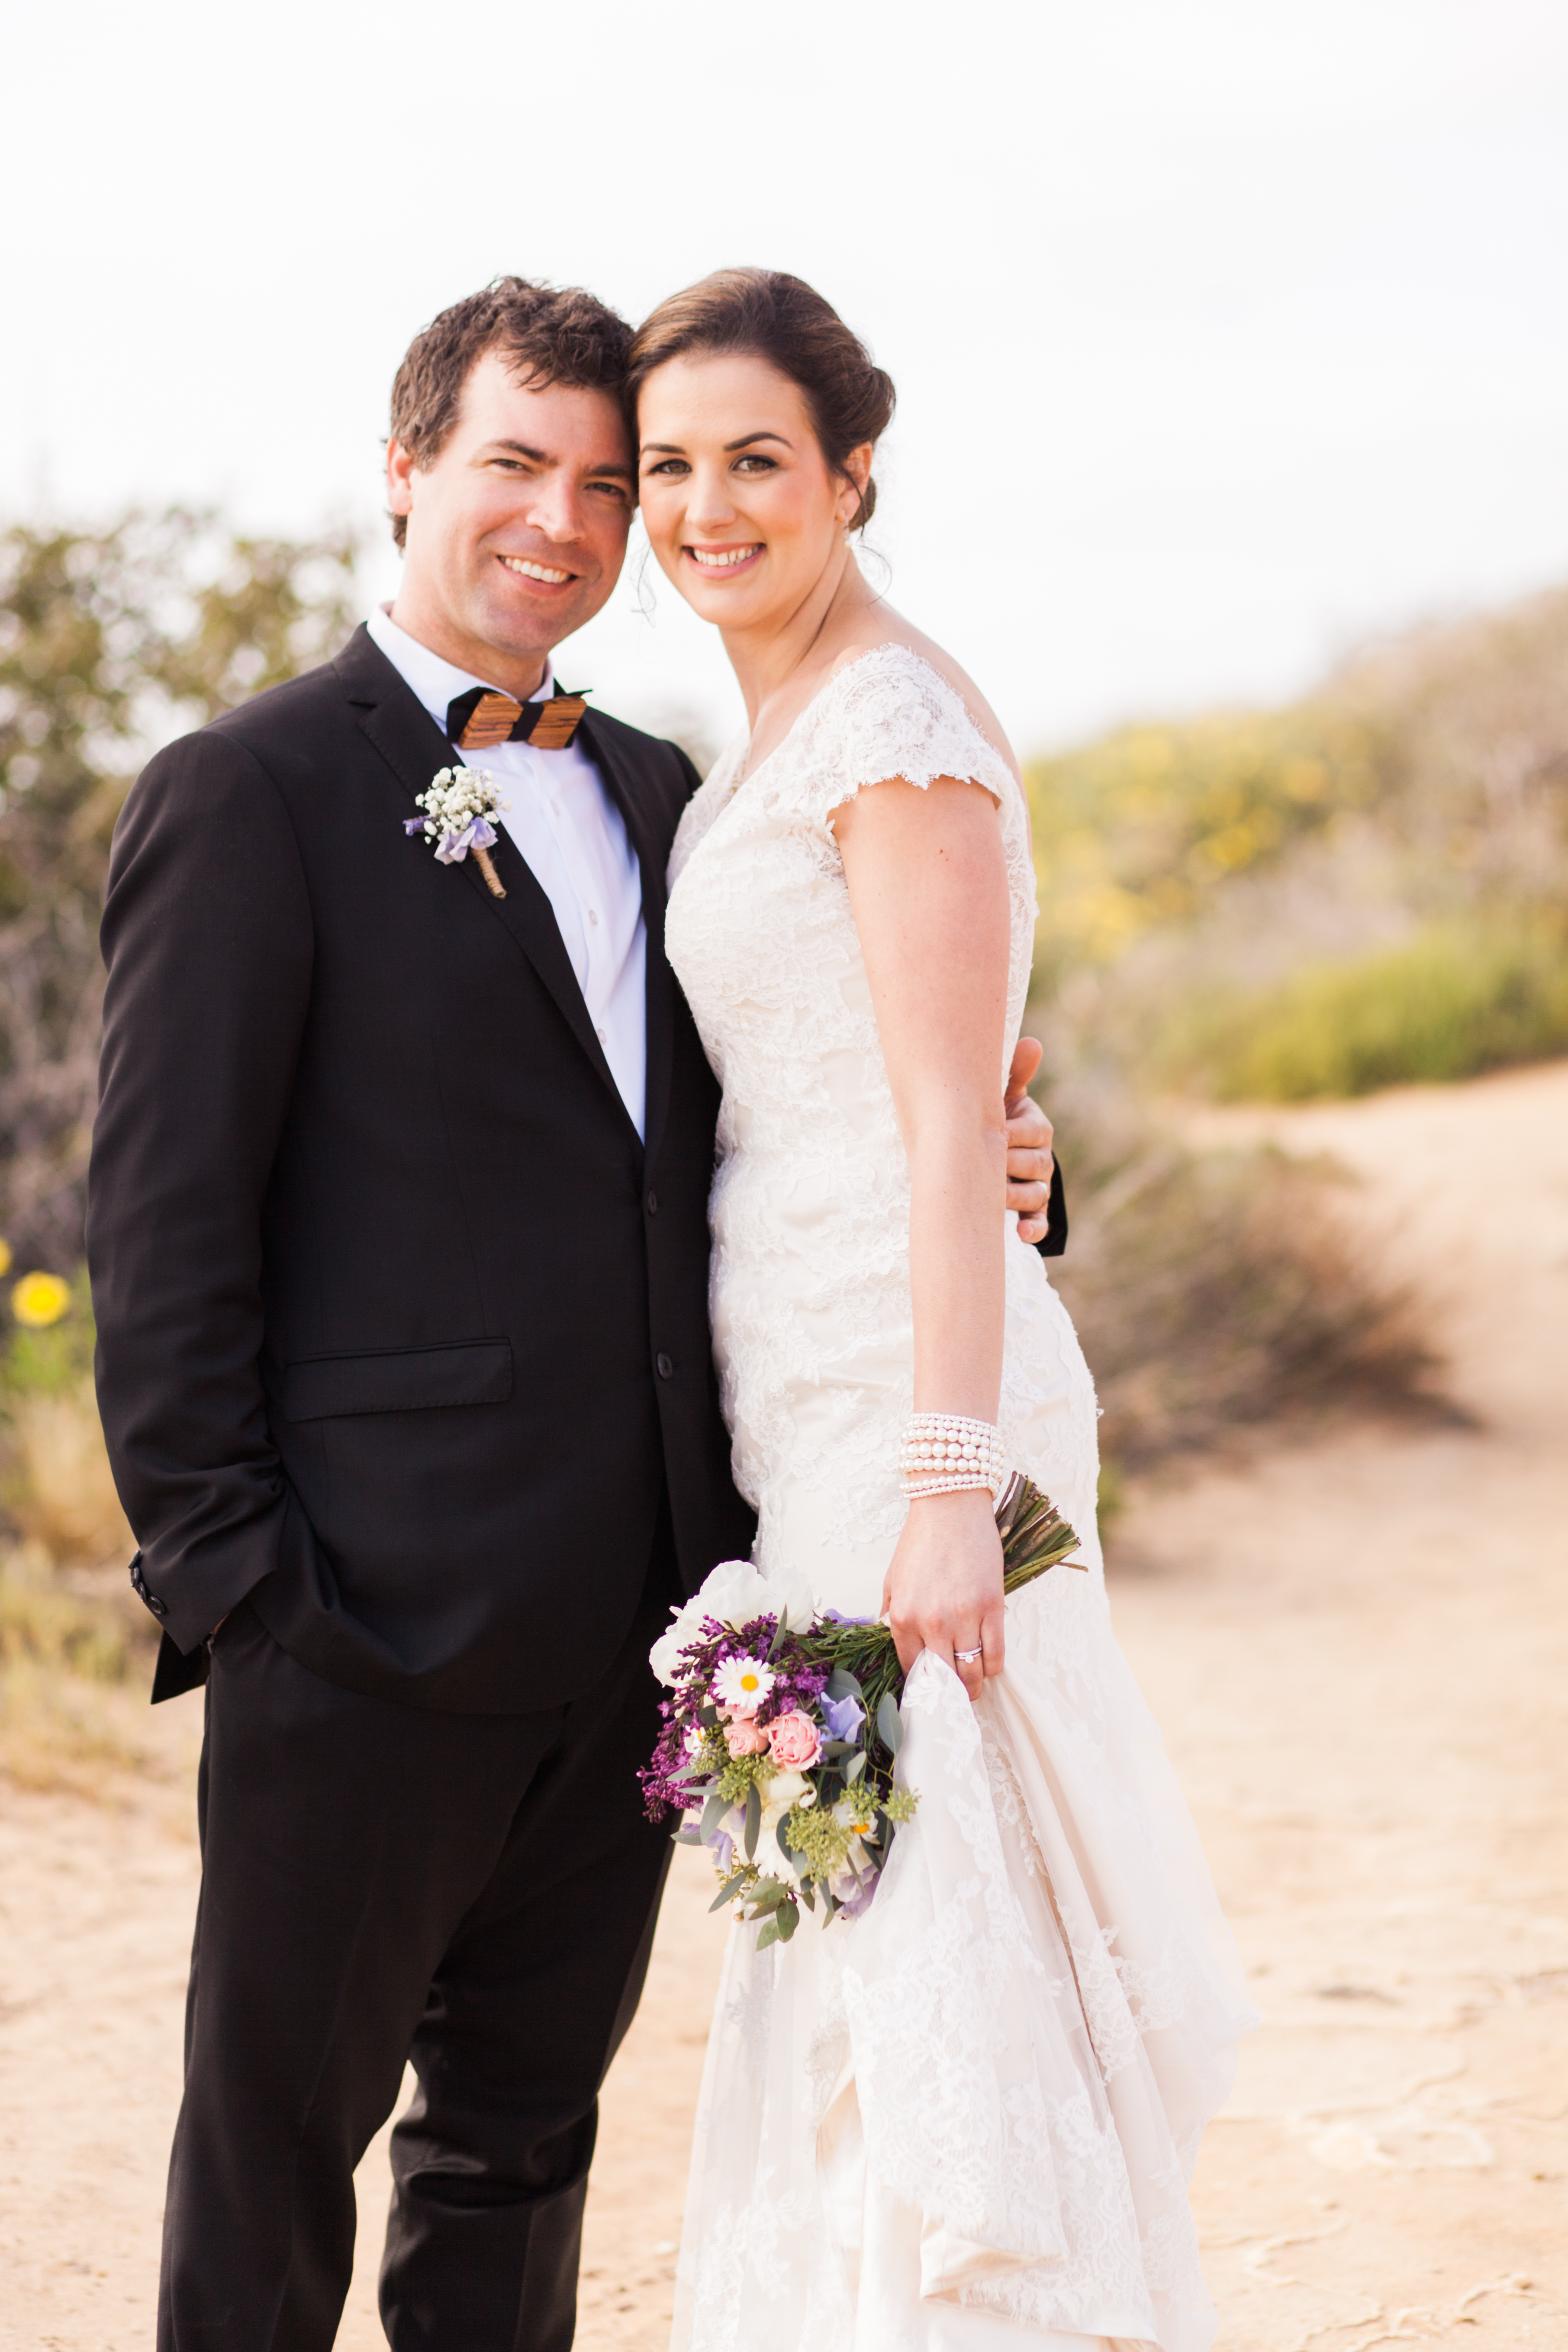 Wedding Officiant San Diego